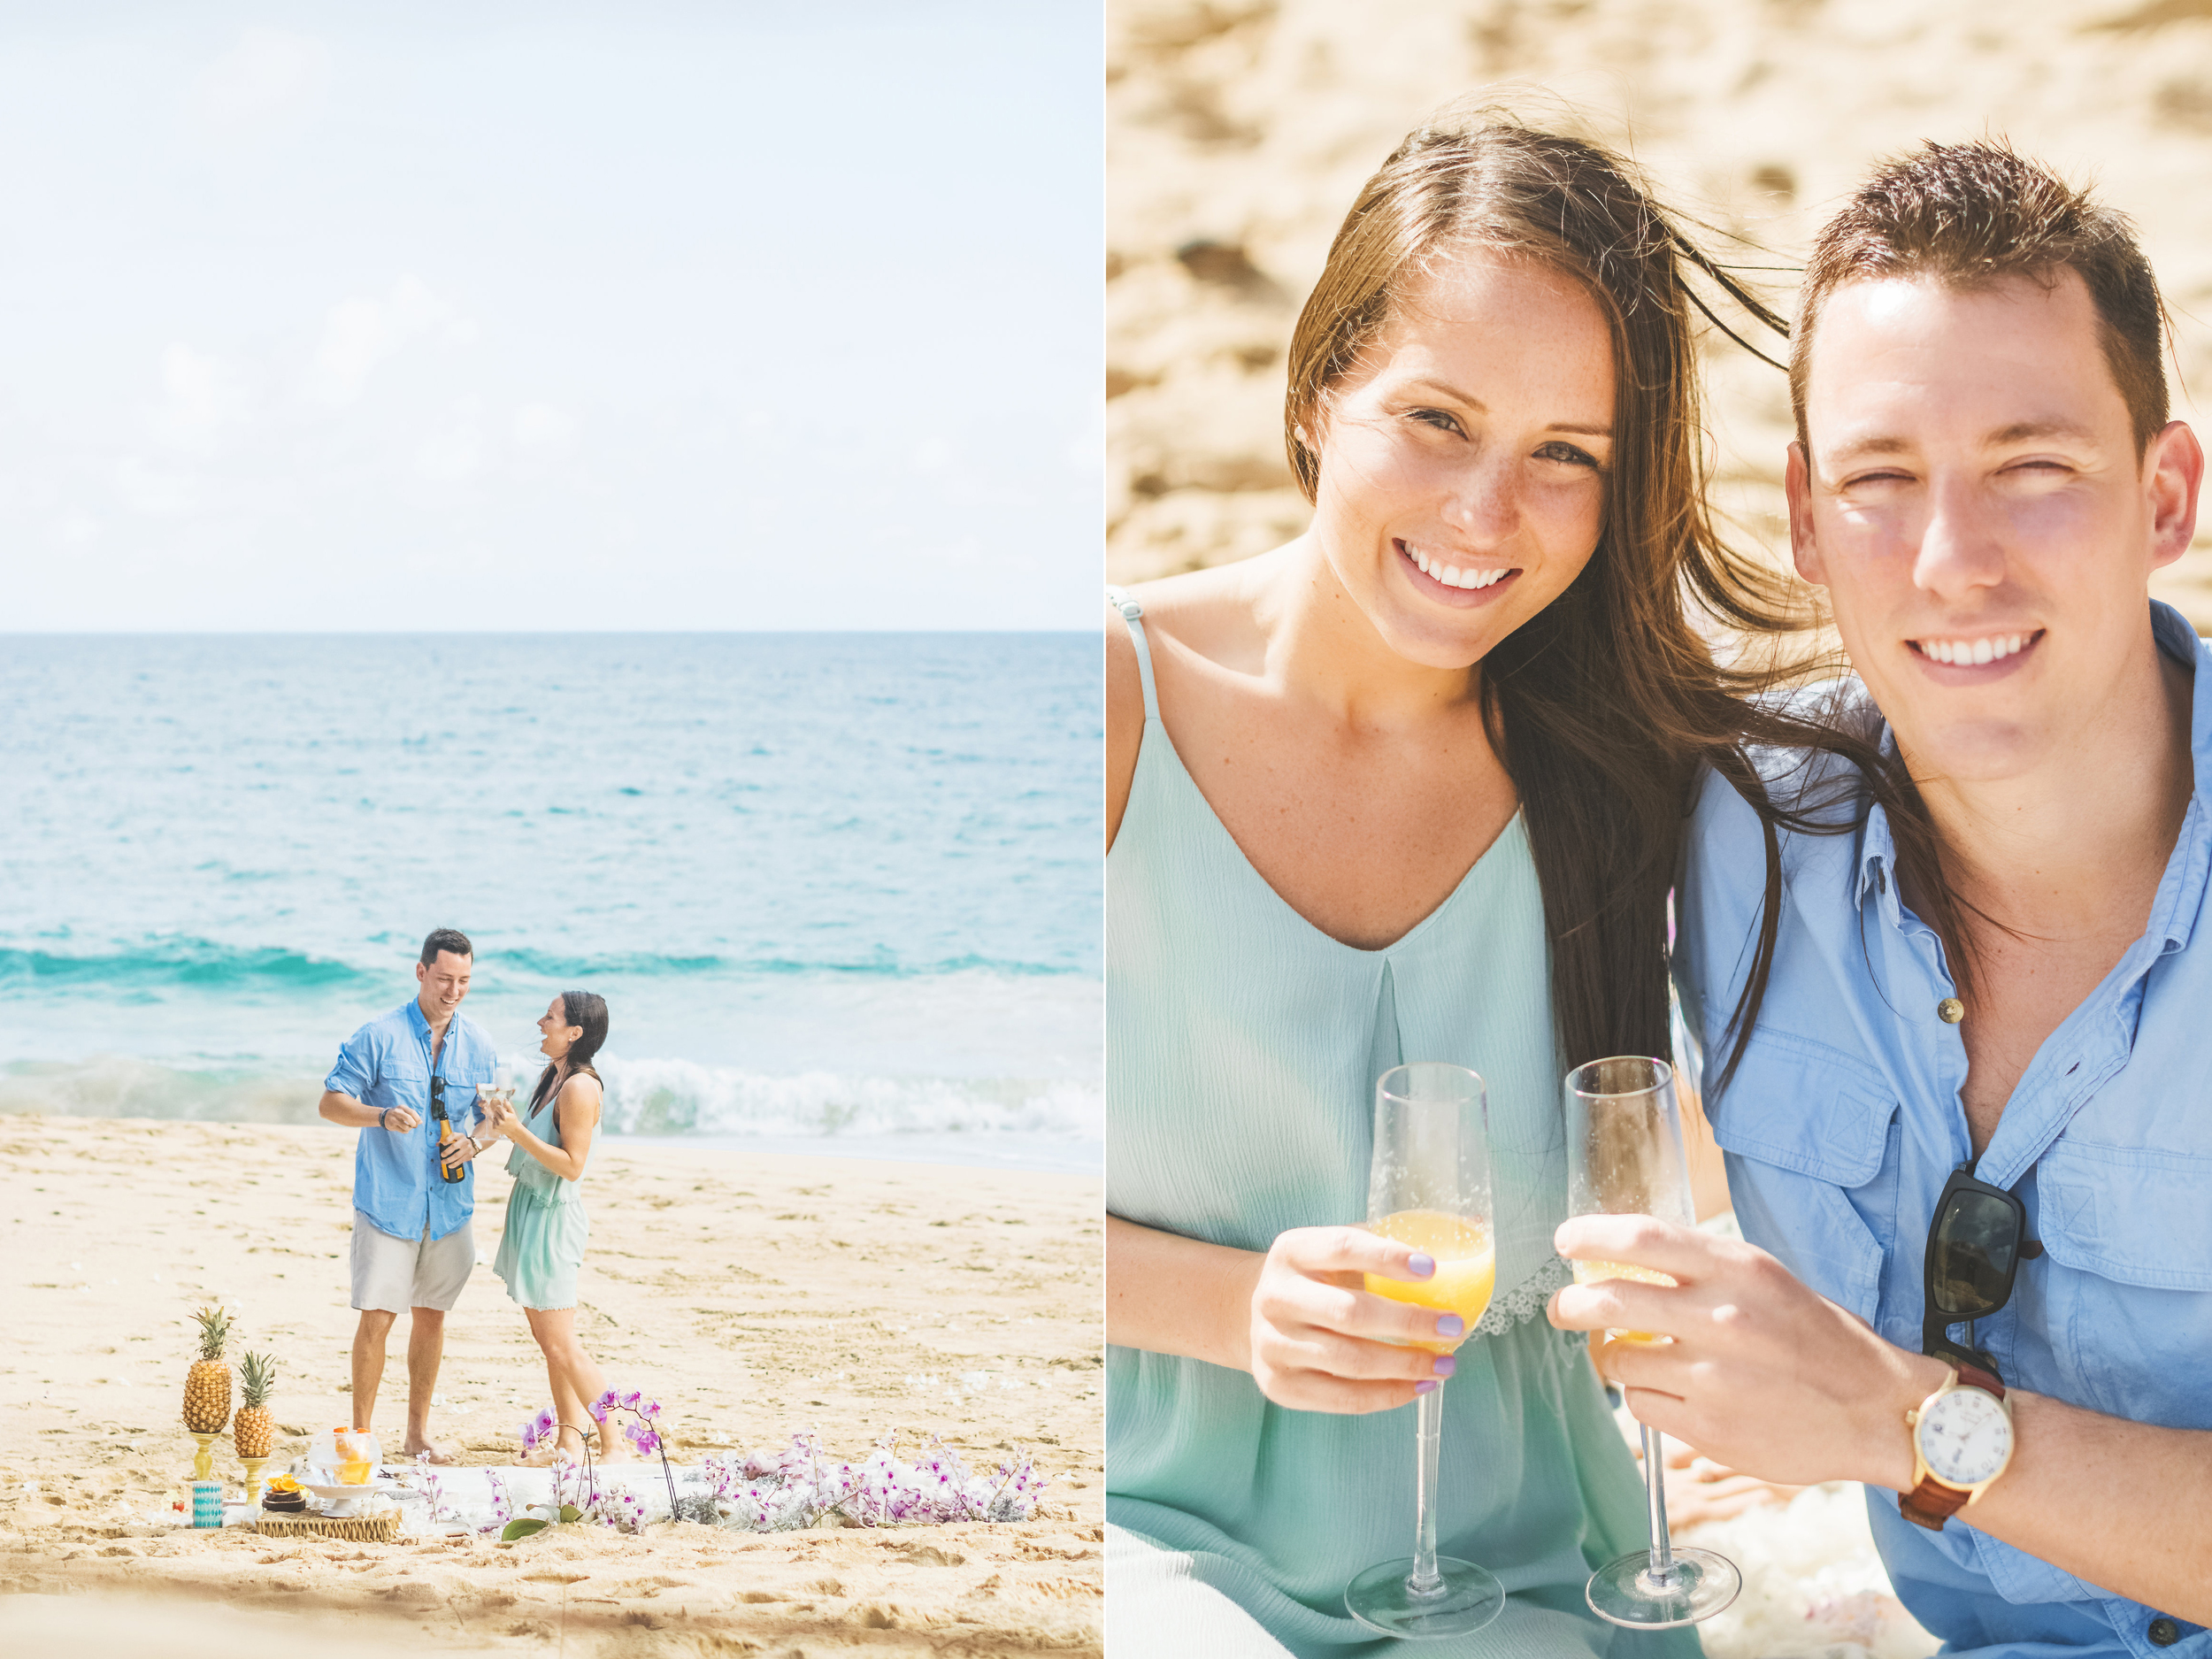 angie-diaz-photography-maui-proposal-baldwin-beach-aimee-tyler-13.jpg